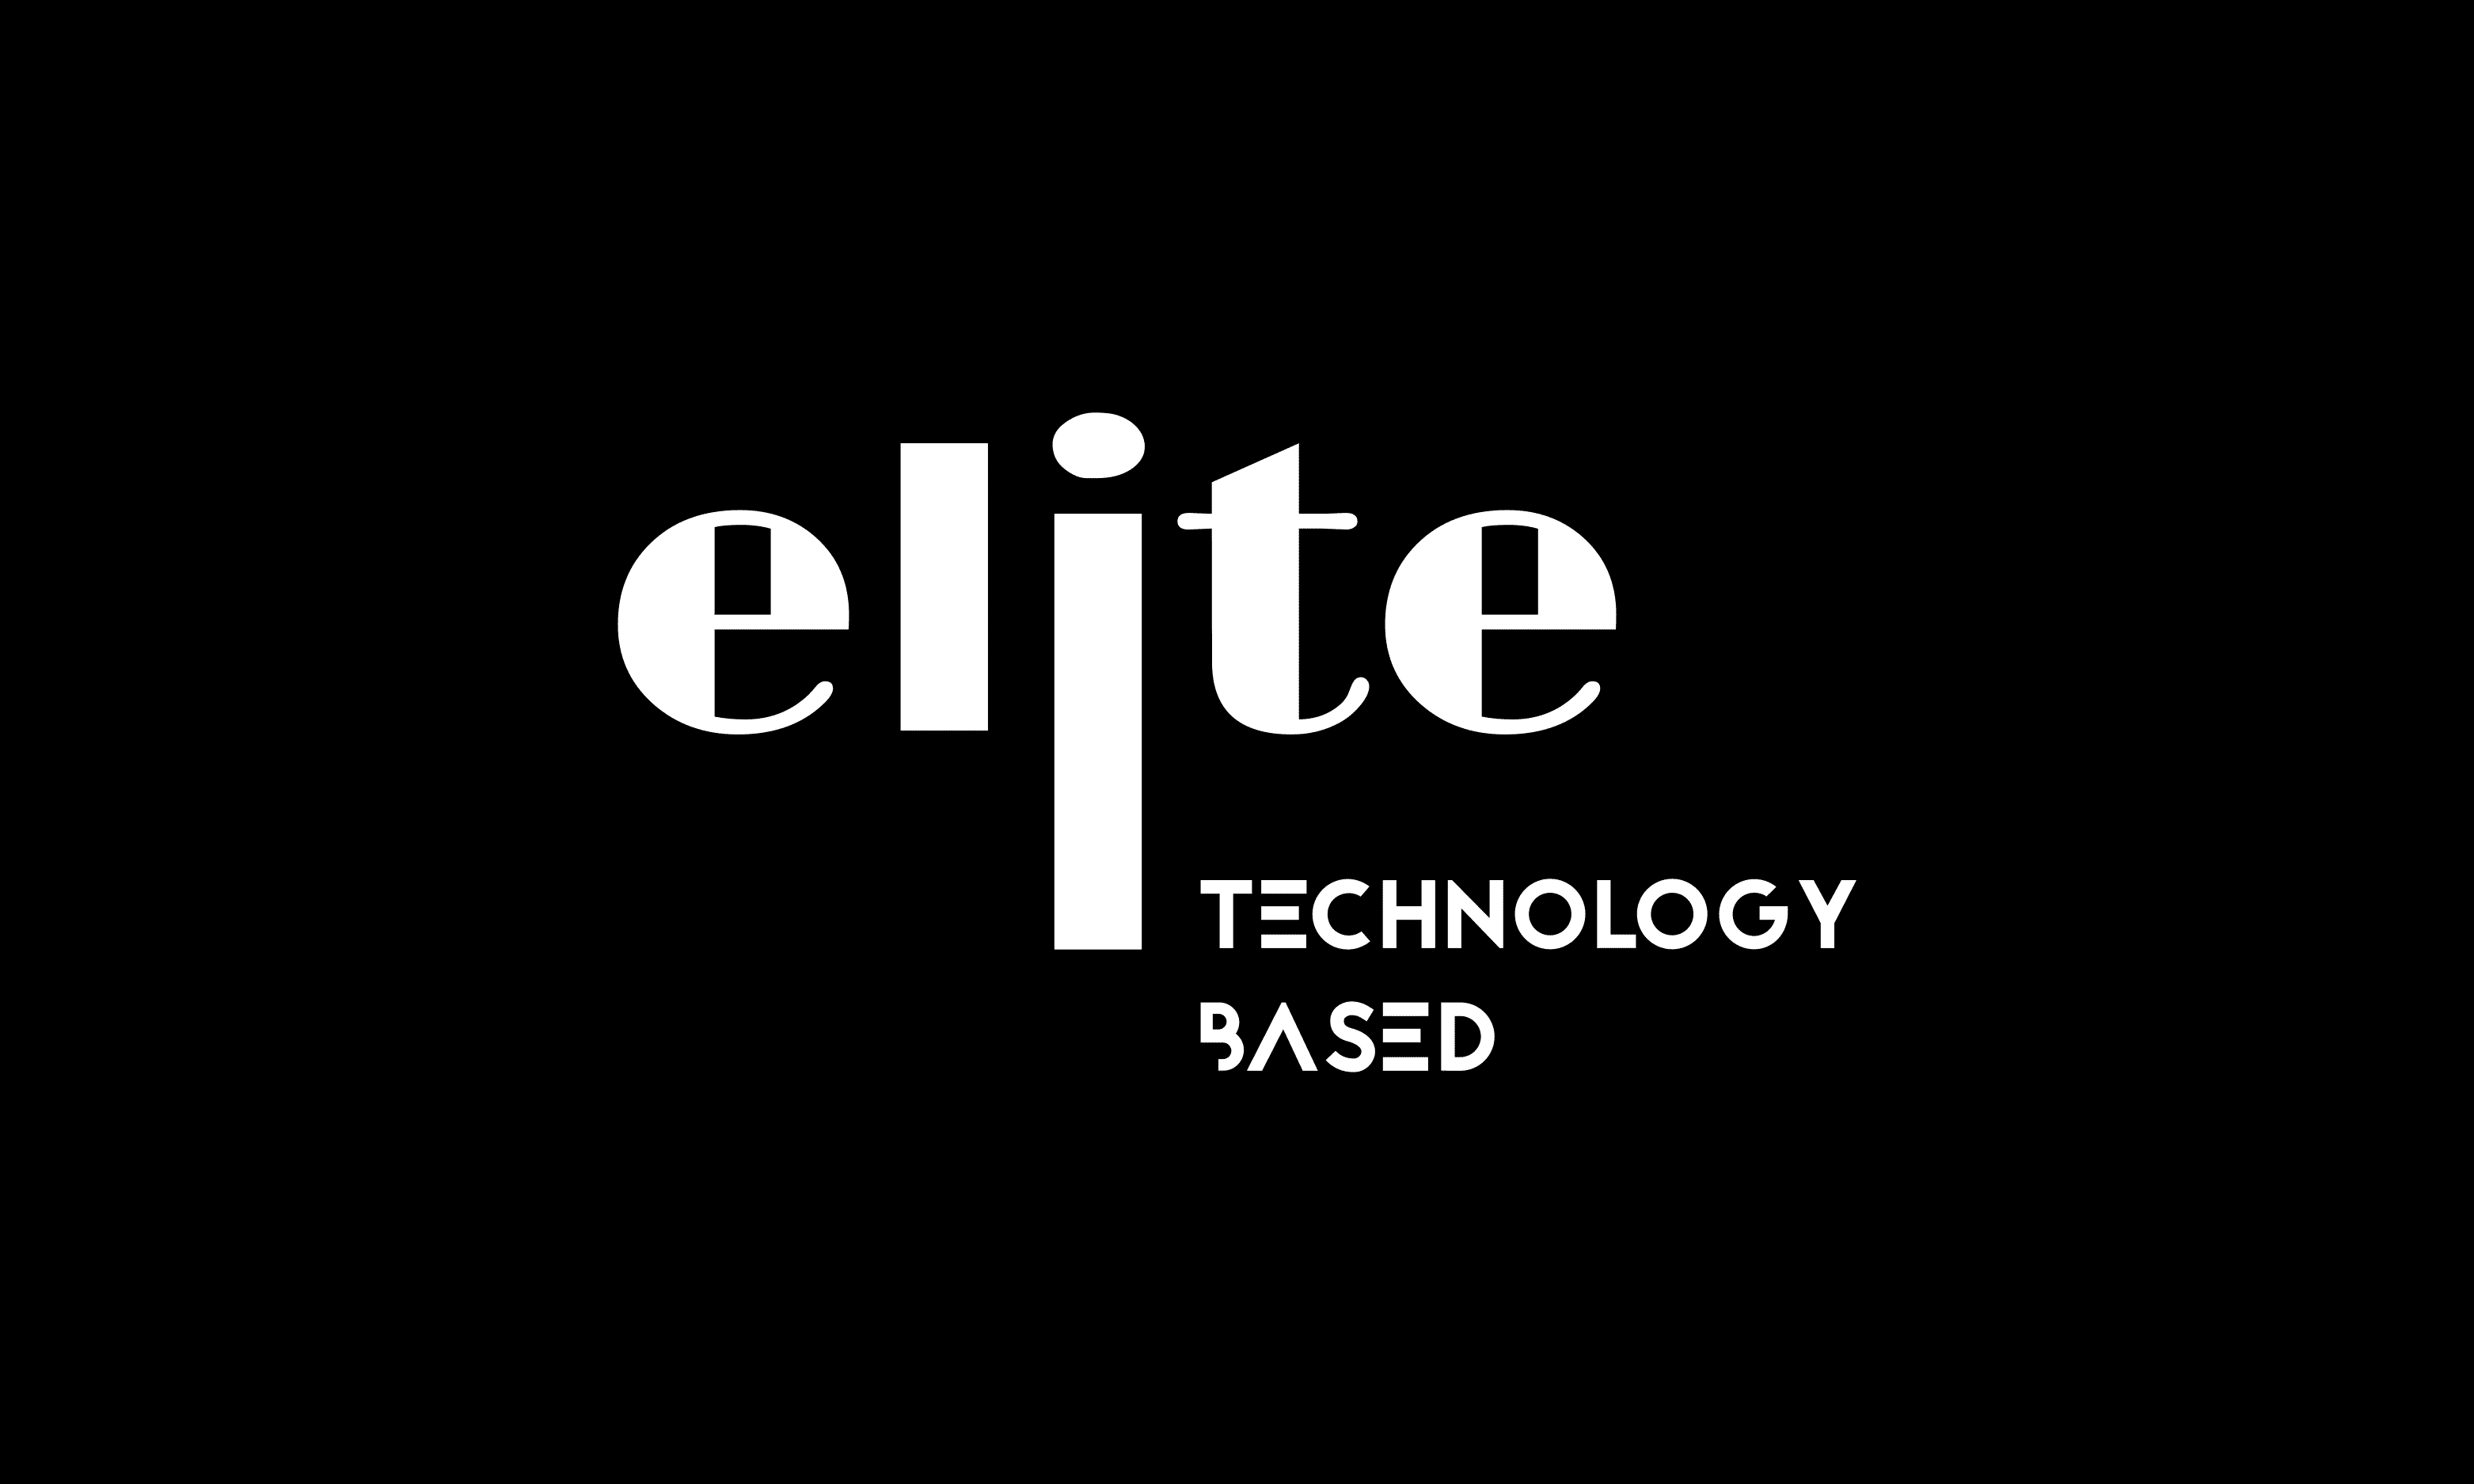 elite logo black